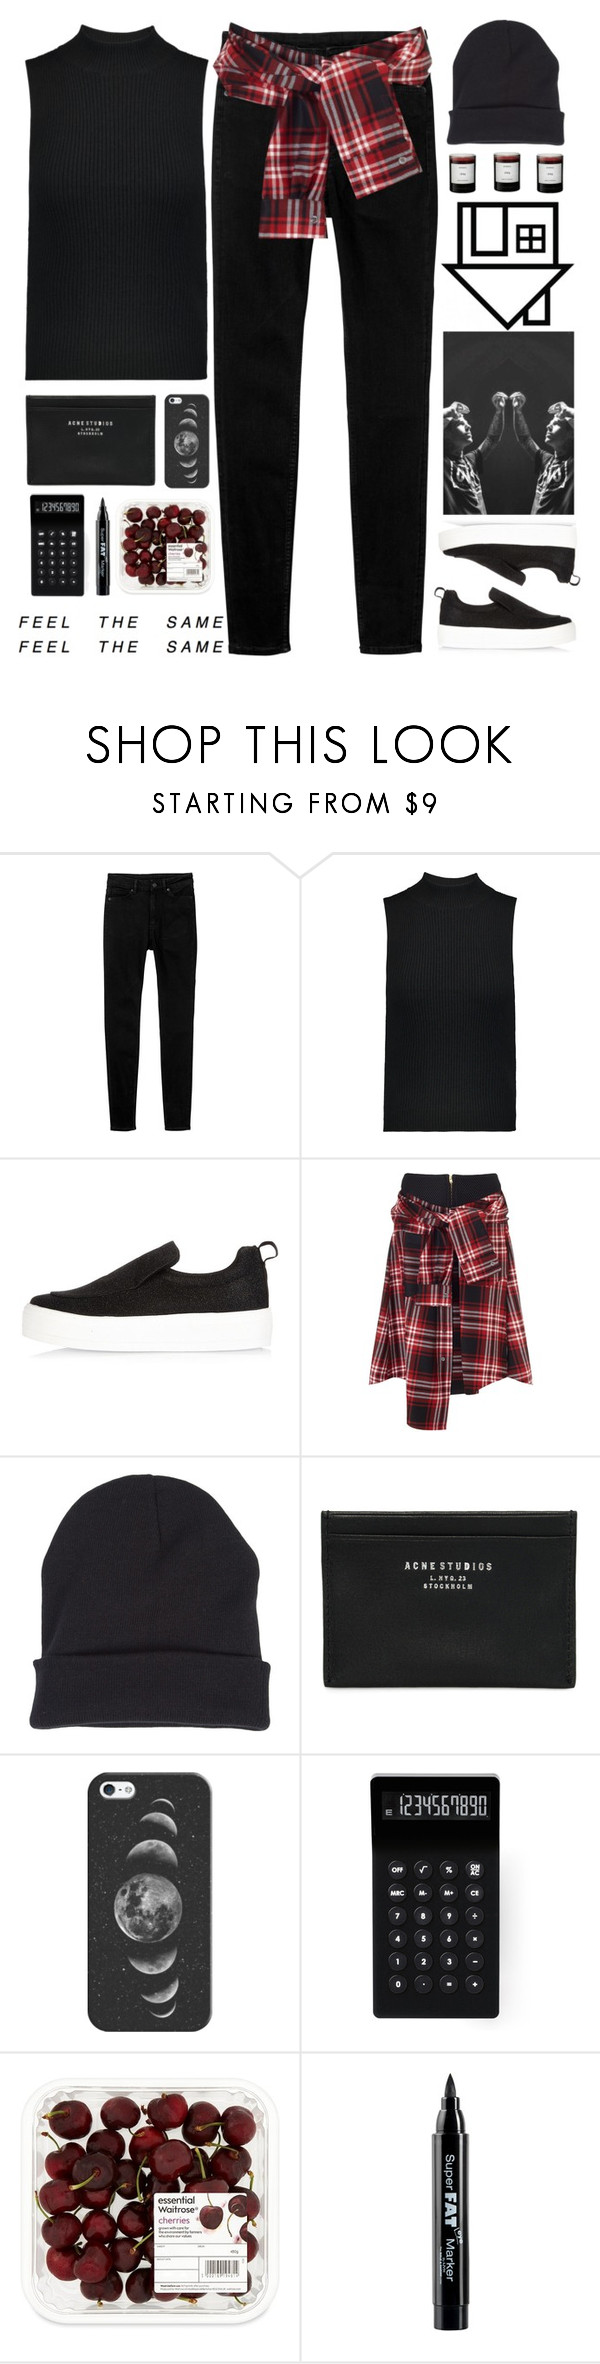 """""""The Neighbourhood-Cry Baby"""" by holunderbluete ❤ liked on Polyvore featuring Monki, Theory, River Island, David Szeto, Columbia, Acne Studios, Casetify, LEXON, AME and NYX"""